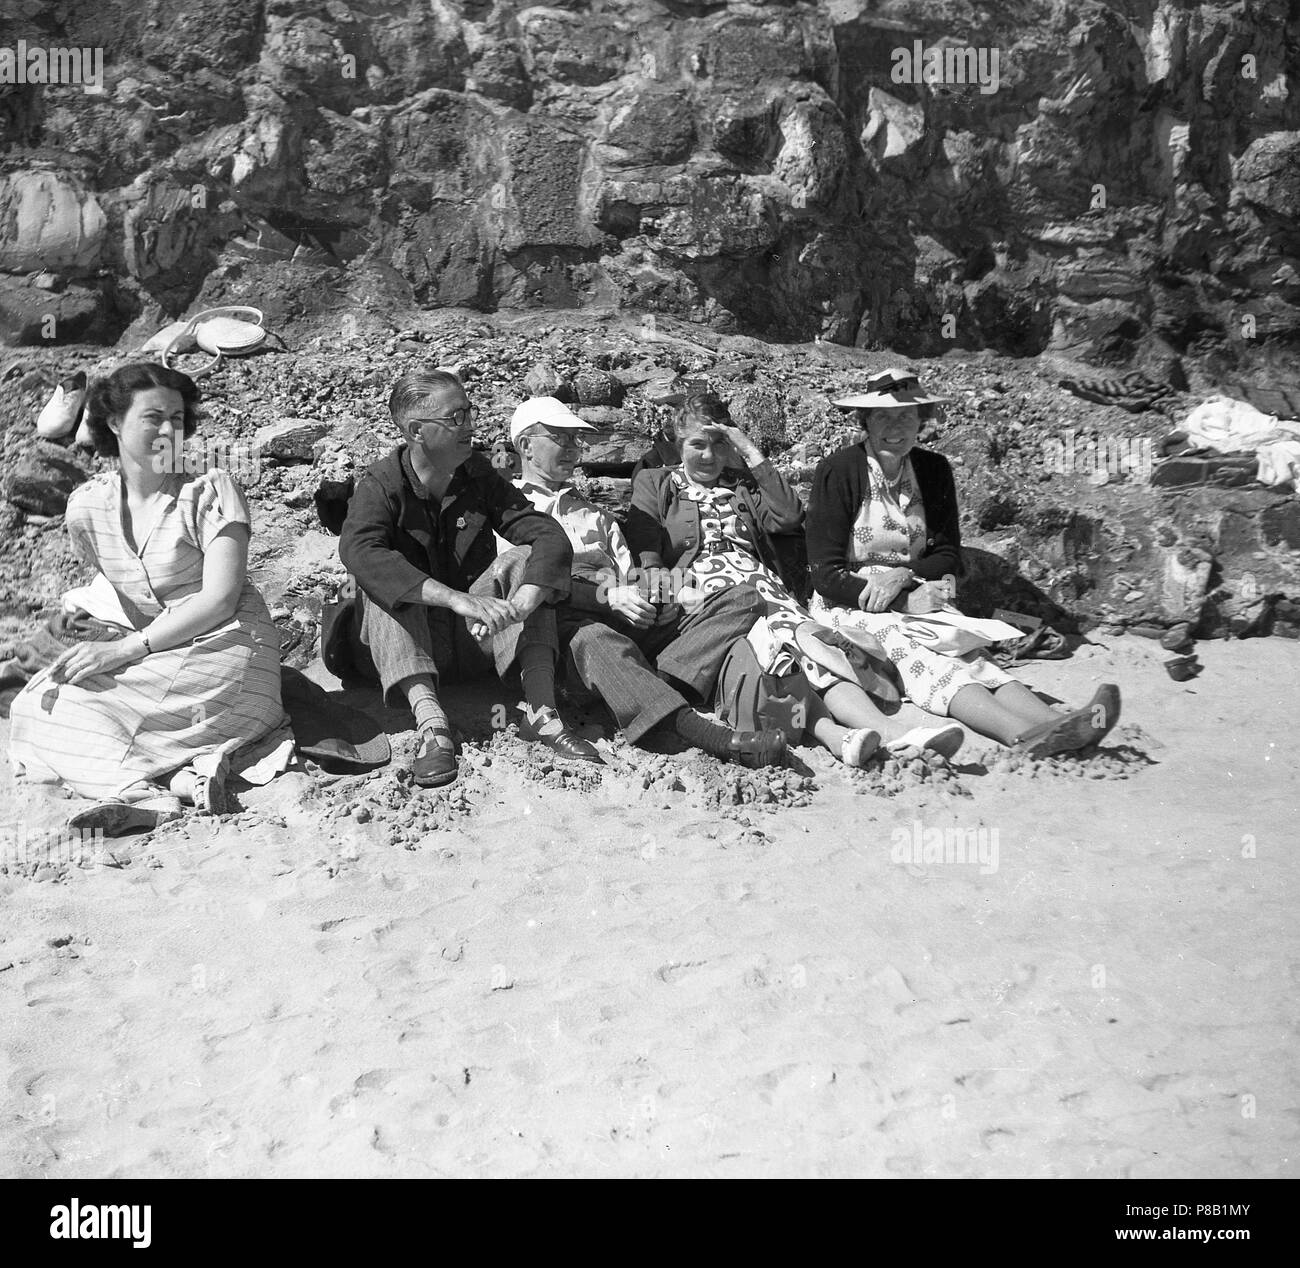 1950s, a hot day and a traditional British family in their day clothes sit together on a sandy beach .....and not a swim or bathingsuit in sight! Stock Photo